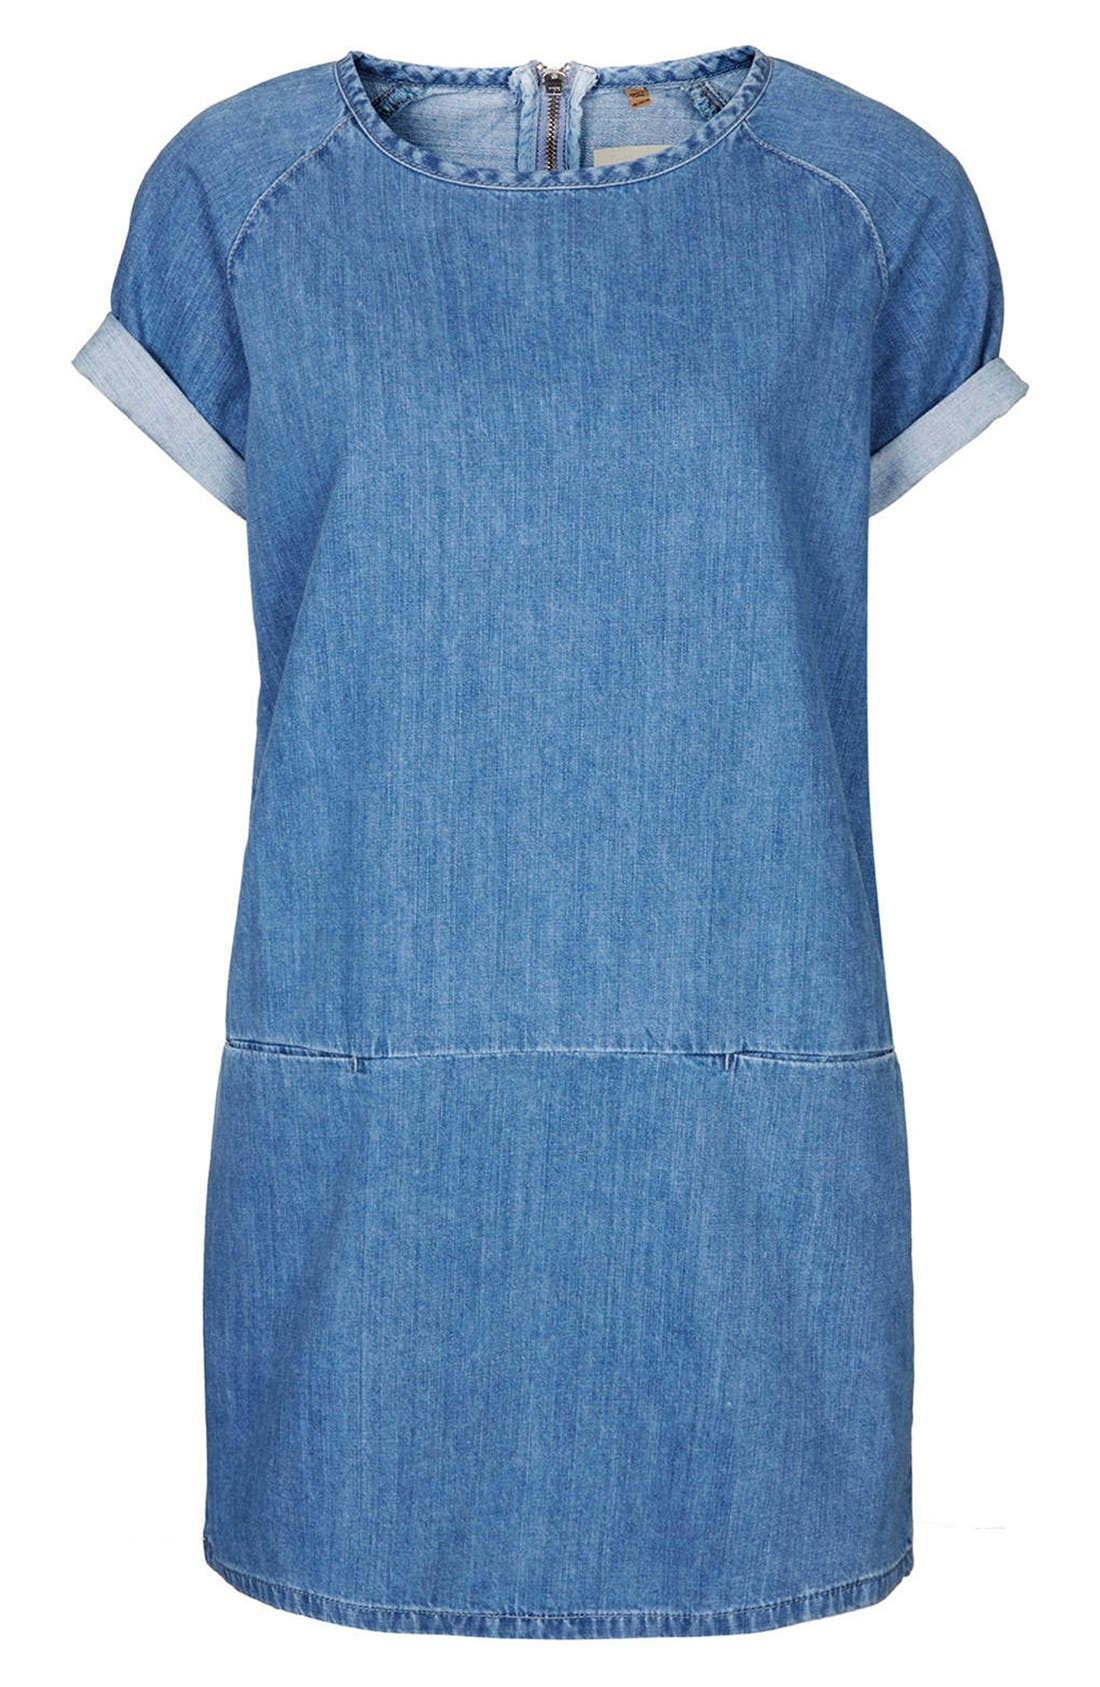 Alternate Image 3  - Topshop Moto Denim T-Shirt Dress (Petite)